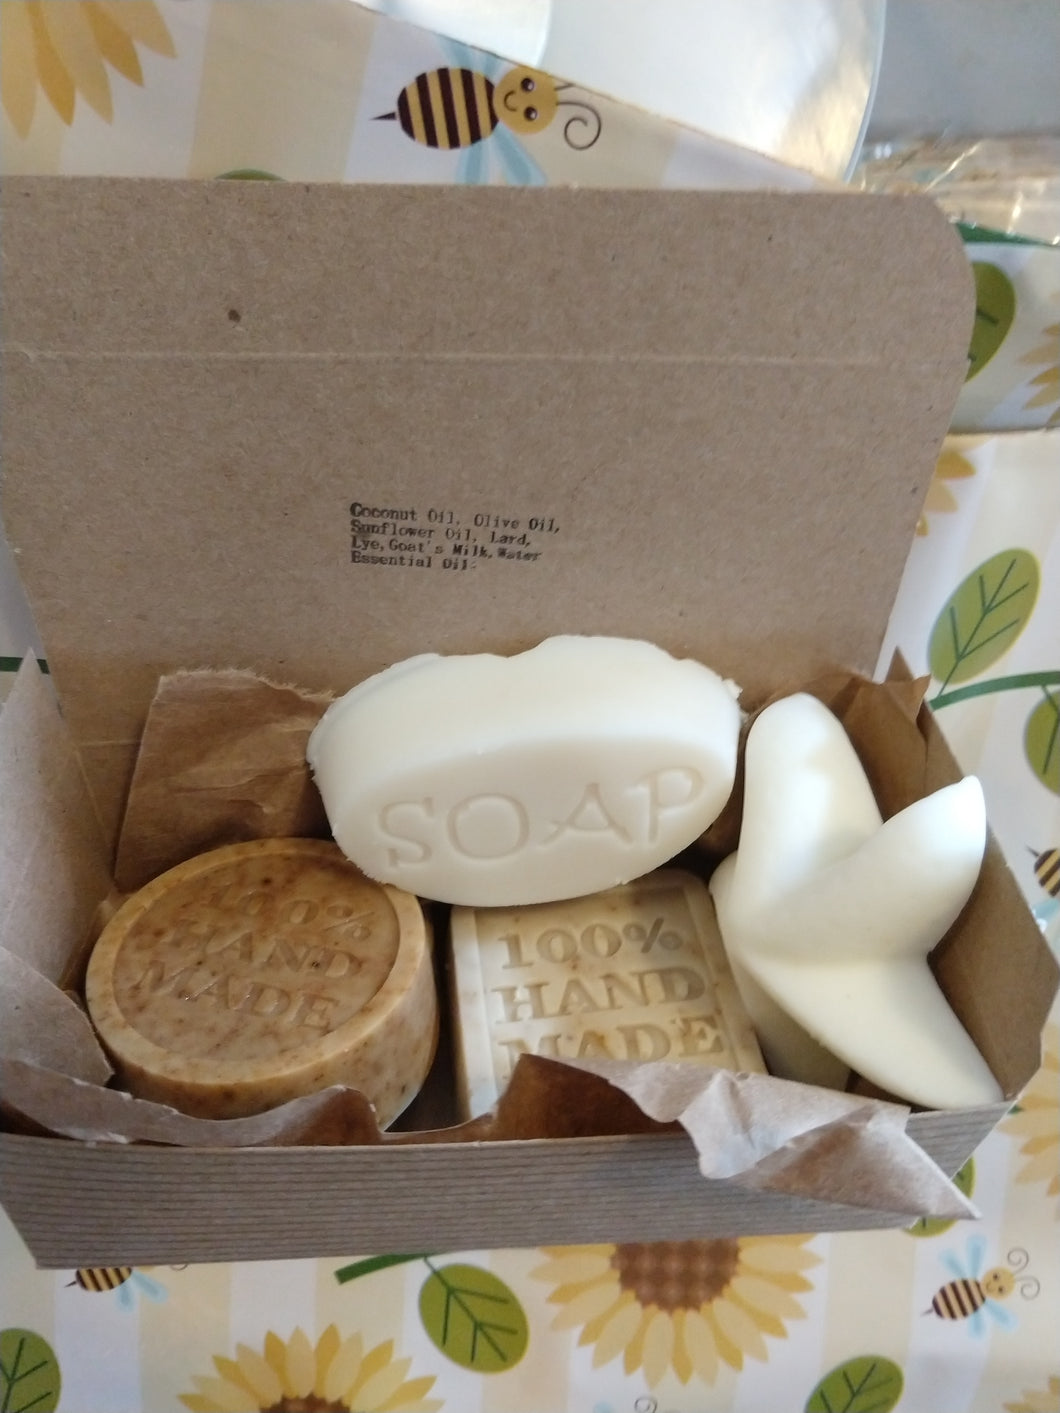 3 Soap Sample & 1 Conditioning Bar Gift Box Shampoo & Body Bars